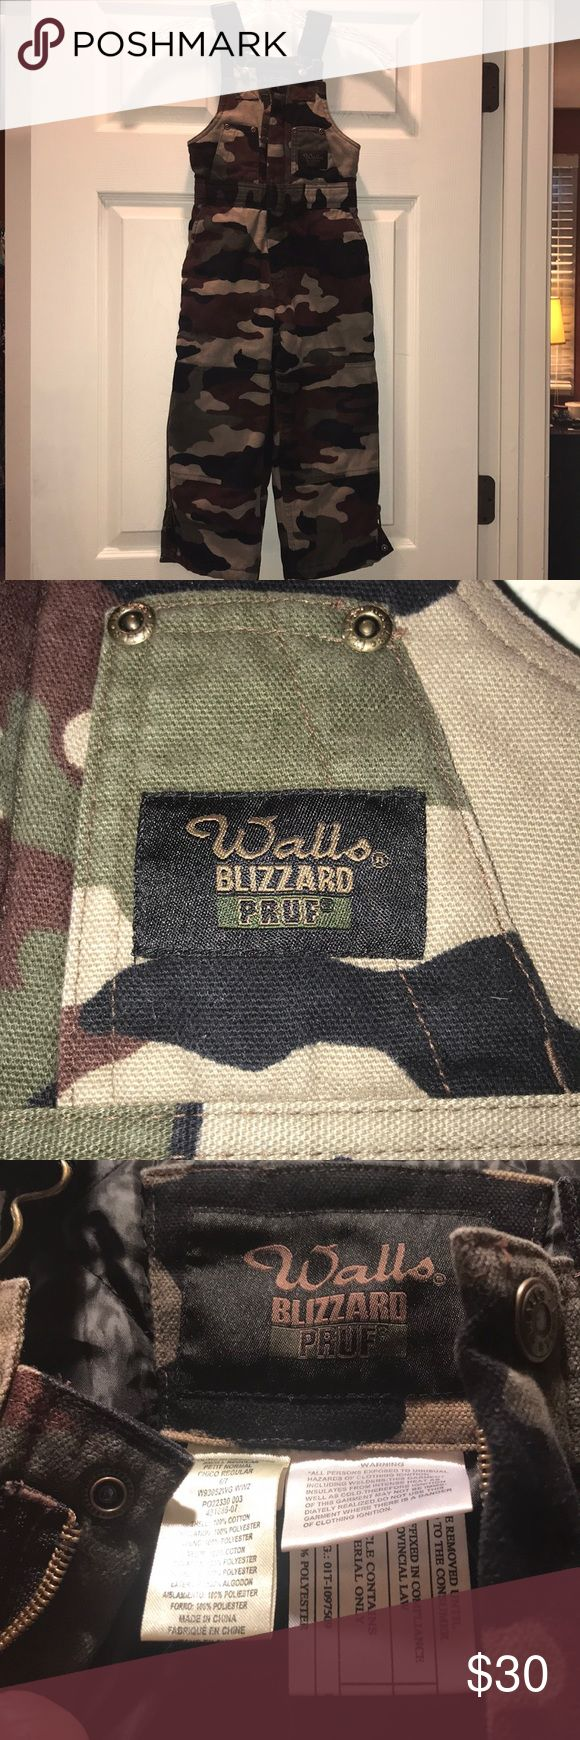 walls blizzard pruf camo overalls overalls camo on insulated hunting coveralls walls id=23540